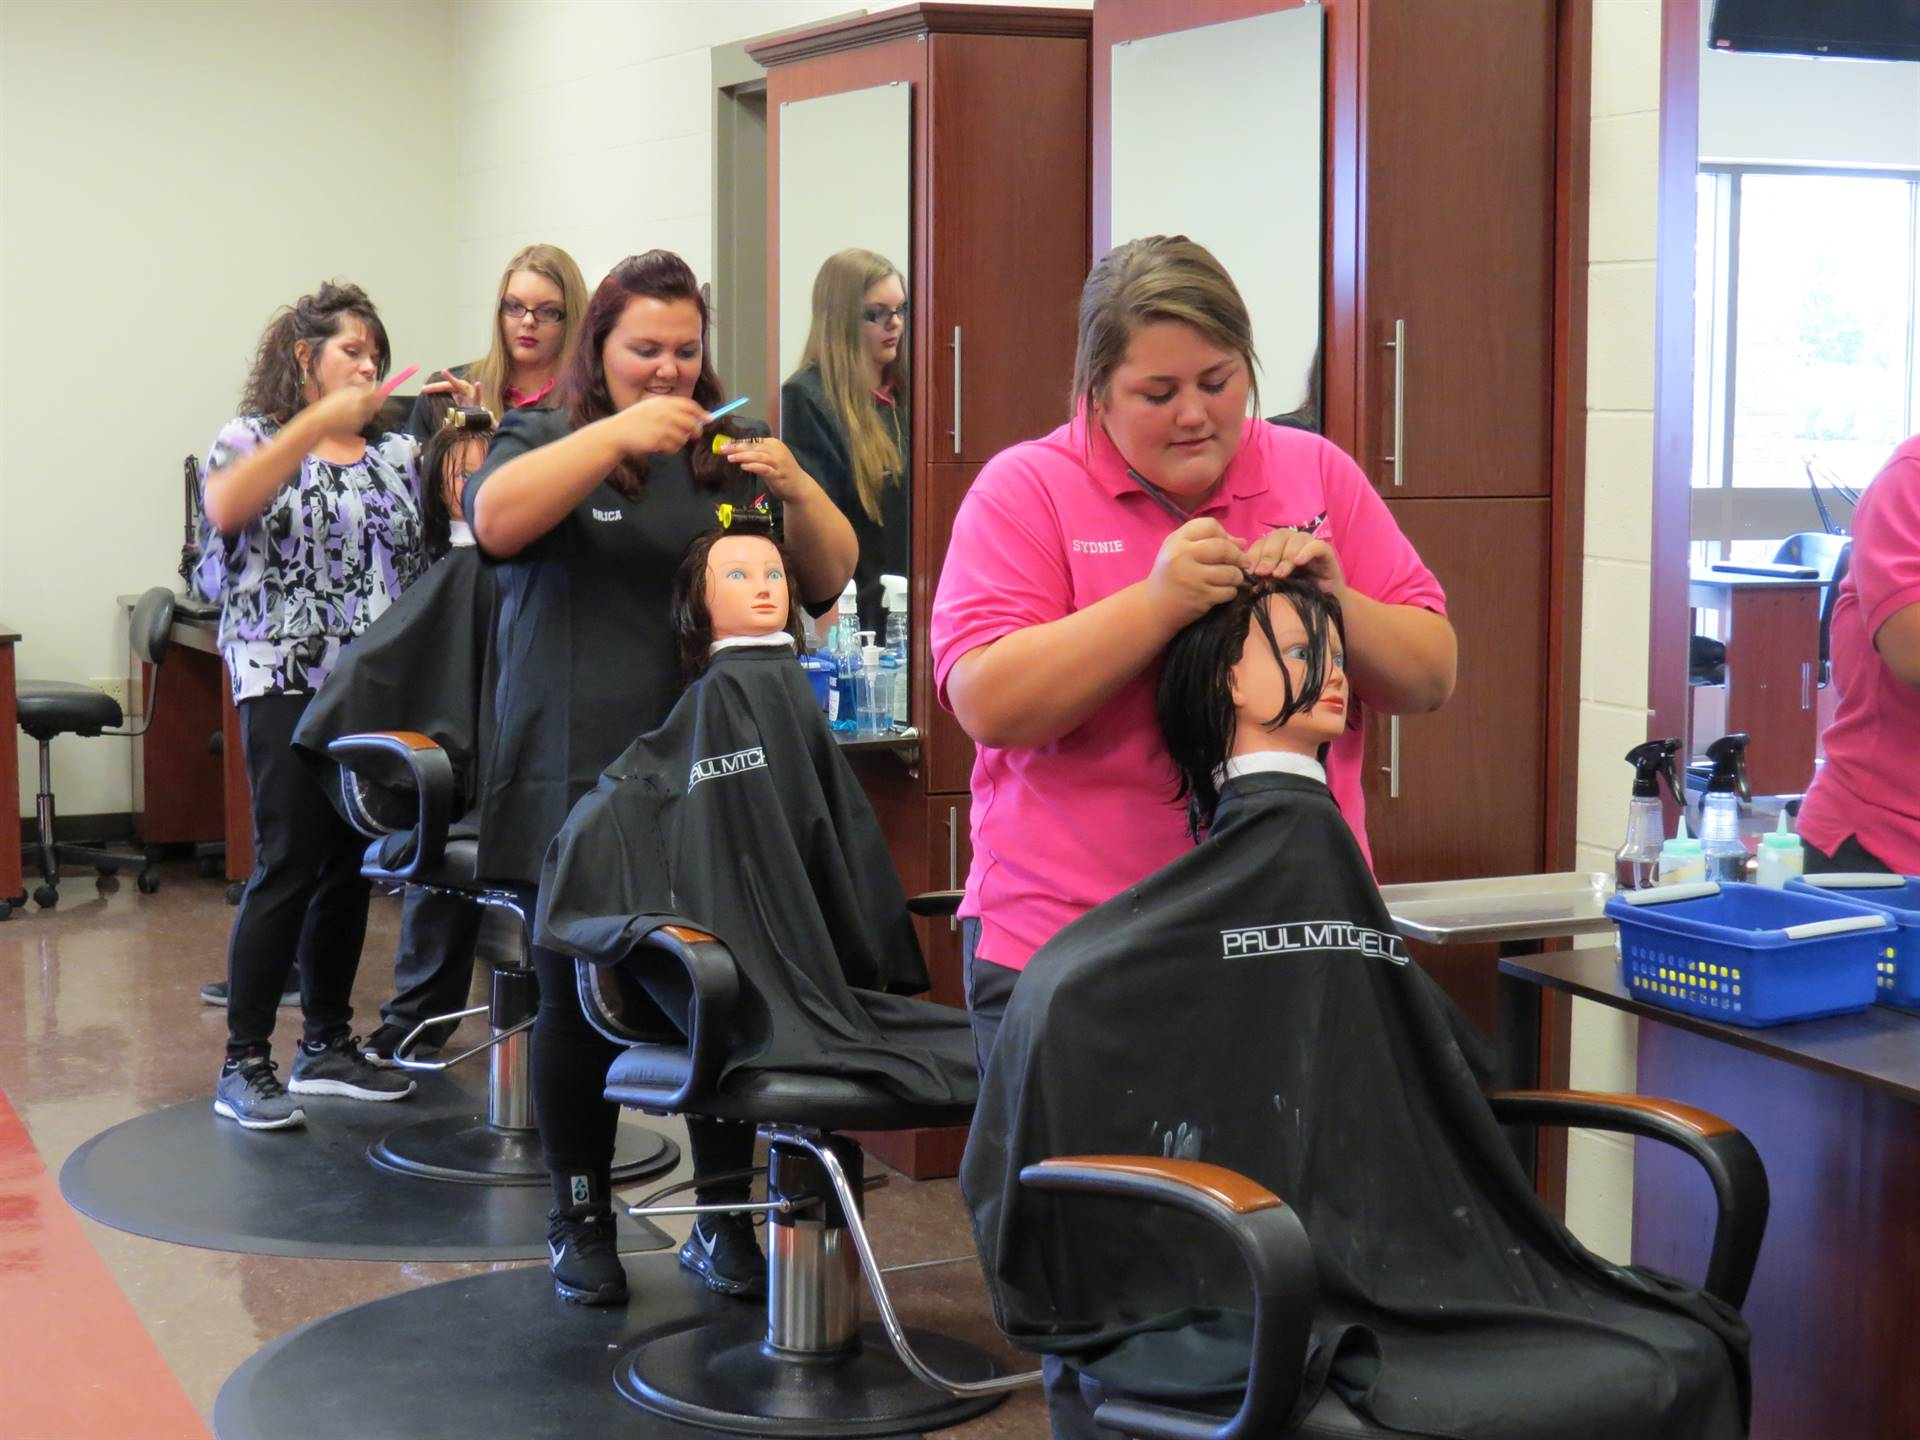 Cosmetology students practice beauty service skills on mannequins.